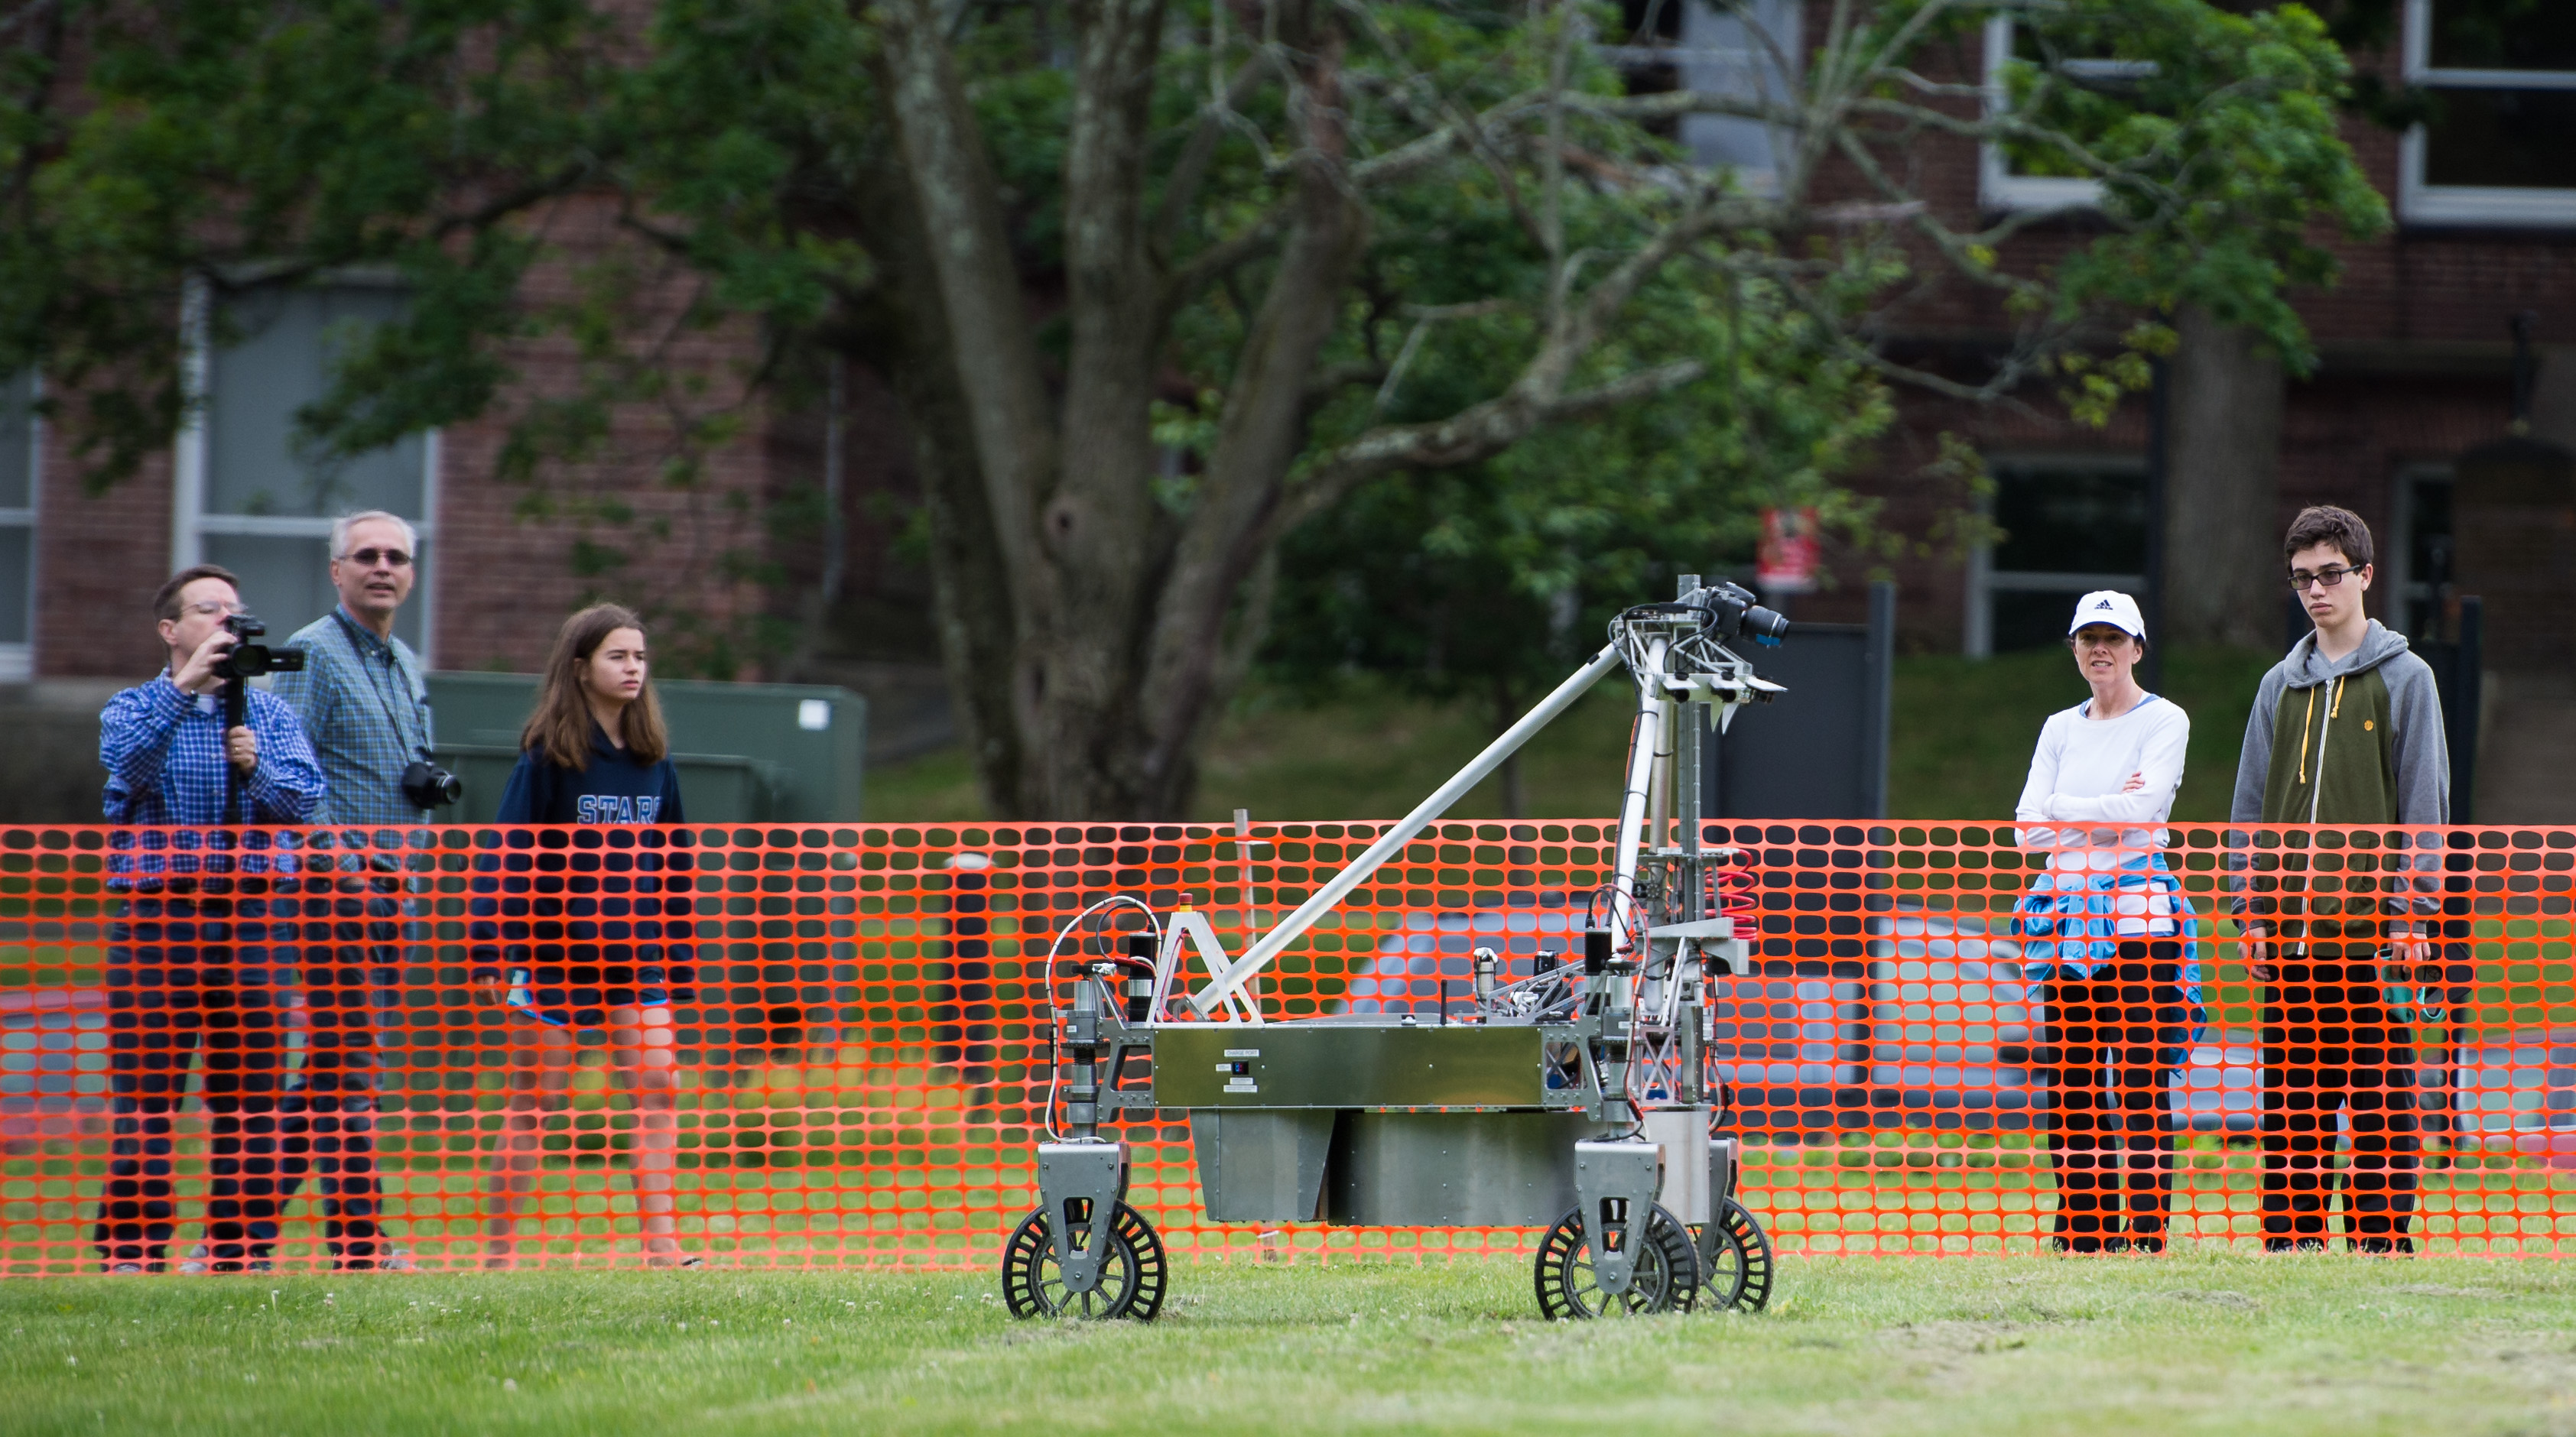 The team Survey robot is seen as it conducts a demonstration of the level two challenge during the 2014 NASA Centennial Challenges Sample Return Robot Challenge, Thursday, June 12, 2014, at the Worcester Polytechnic Institute (WPI) in Worcester, Mass.   Eighteen teams are competing for a $1.5 million NASA prize purse. Teams will be required to demonstrate autonomous robots that can locate and collect samples from a wide and varied terrain, operating without human control. The objective of this NASA-WPI Centennial Challenge is to encourage innovations in autonomous navigation and robotics technologies. Innovations stemming from the challenge may improve NASA's capability to explore a variety of destinations in space, as well as enhance the nation's robotic technology for use in industries and applications on Earth. Photo Credit: (NASA/Joel Kowsky)